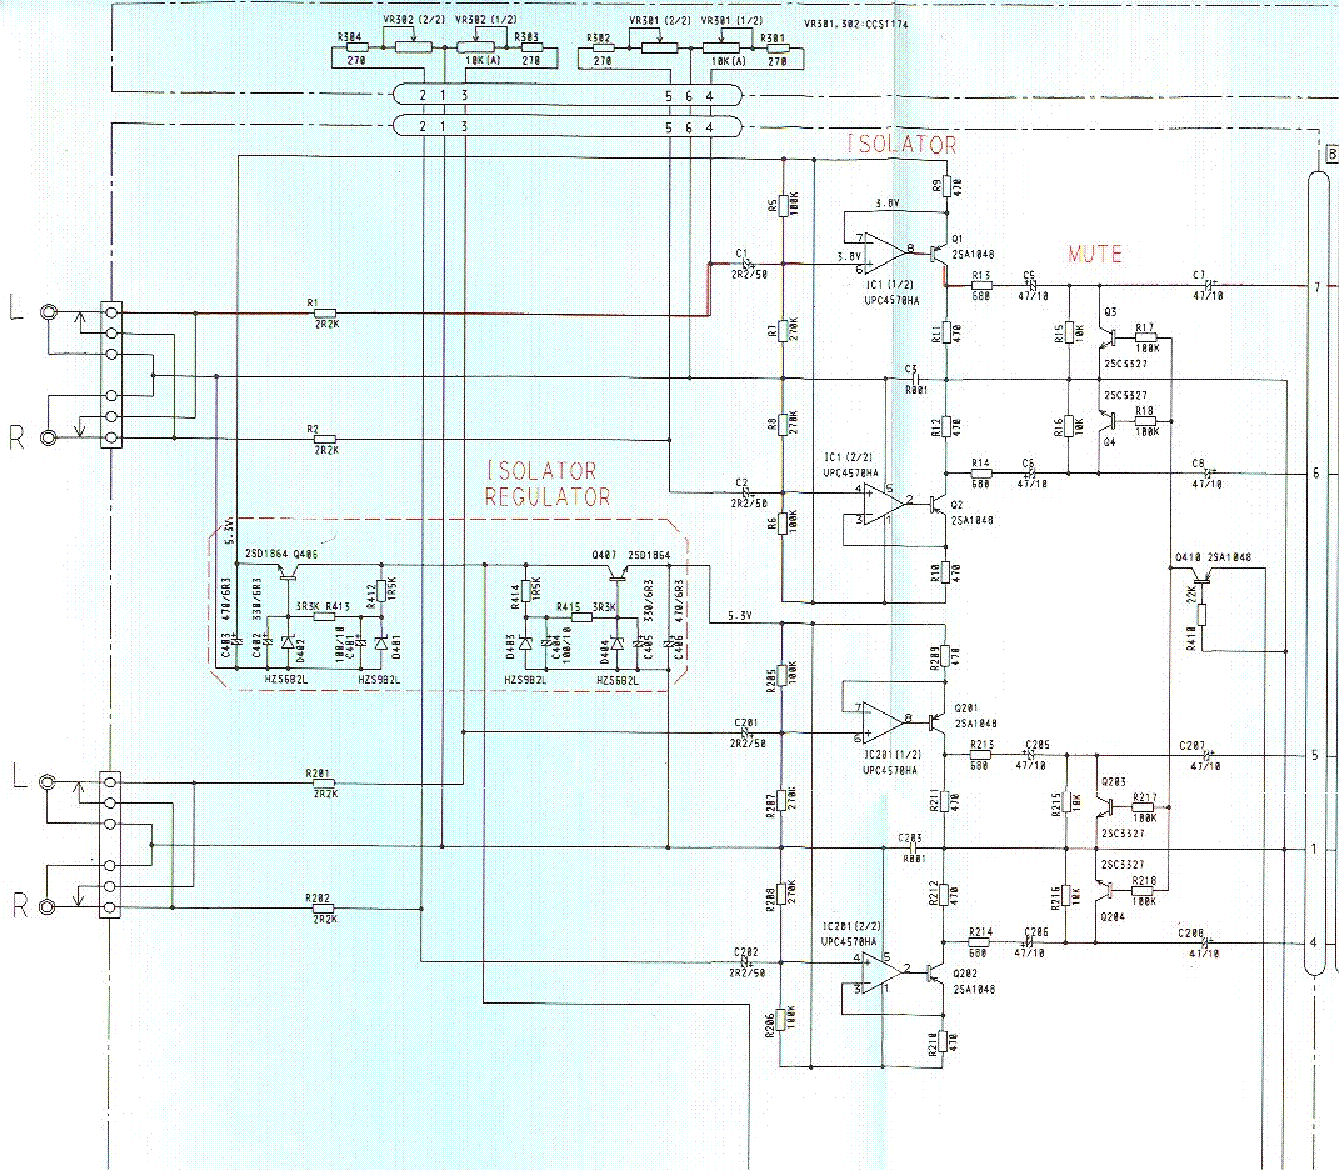 Pioneer Deh 2000 Wiring Diagram Pioneer Circuit Diagrams